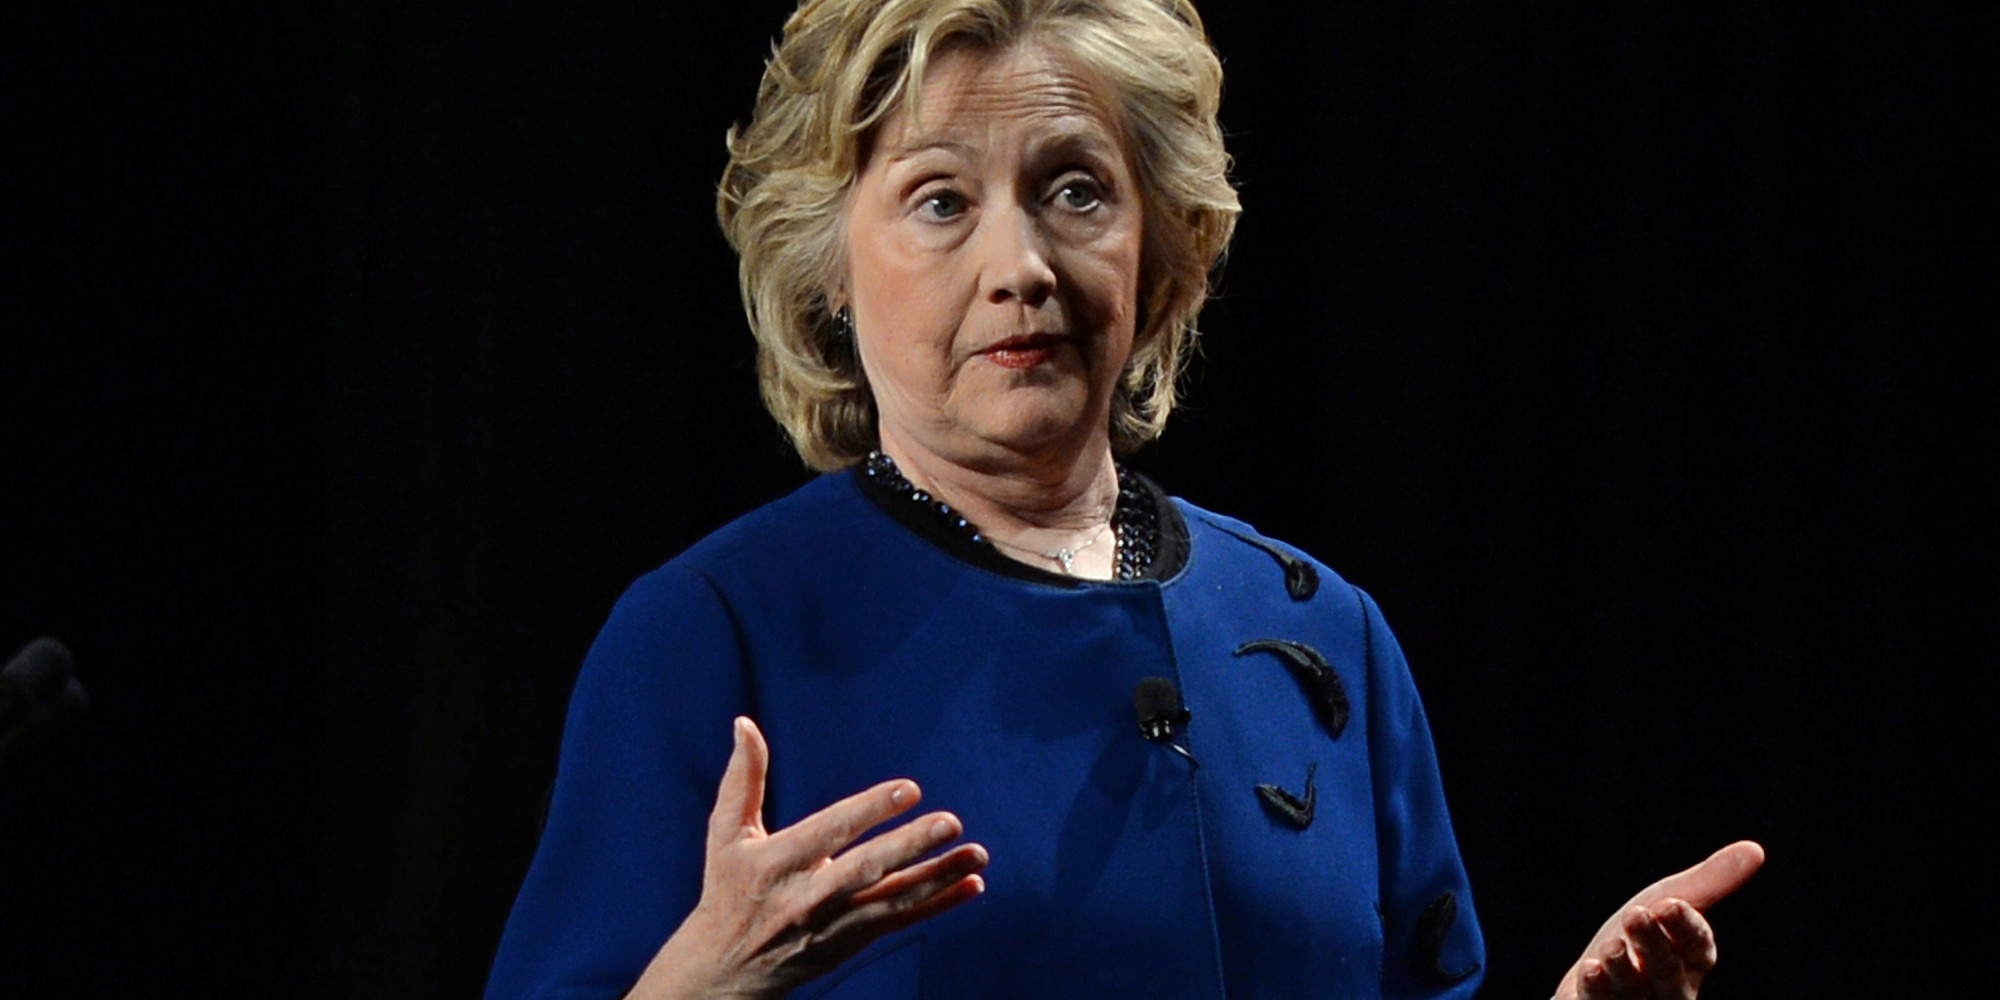 Latest Clinton email dump shows confusion over missed White House meetings, fax machines…